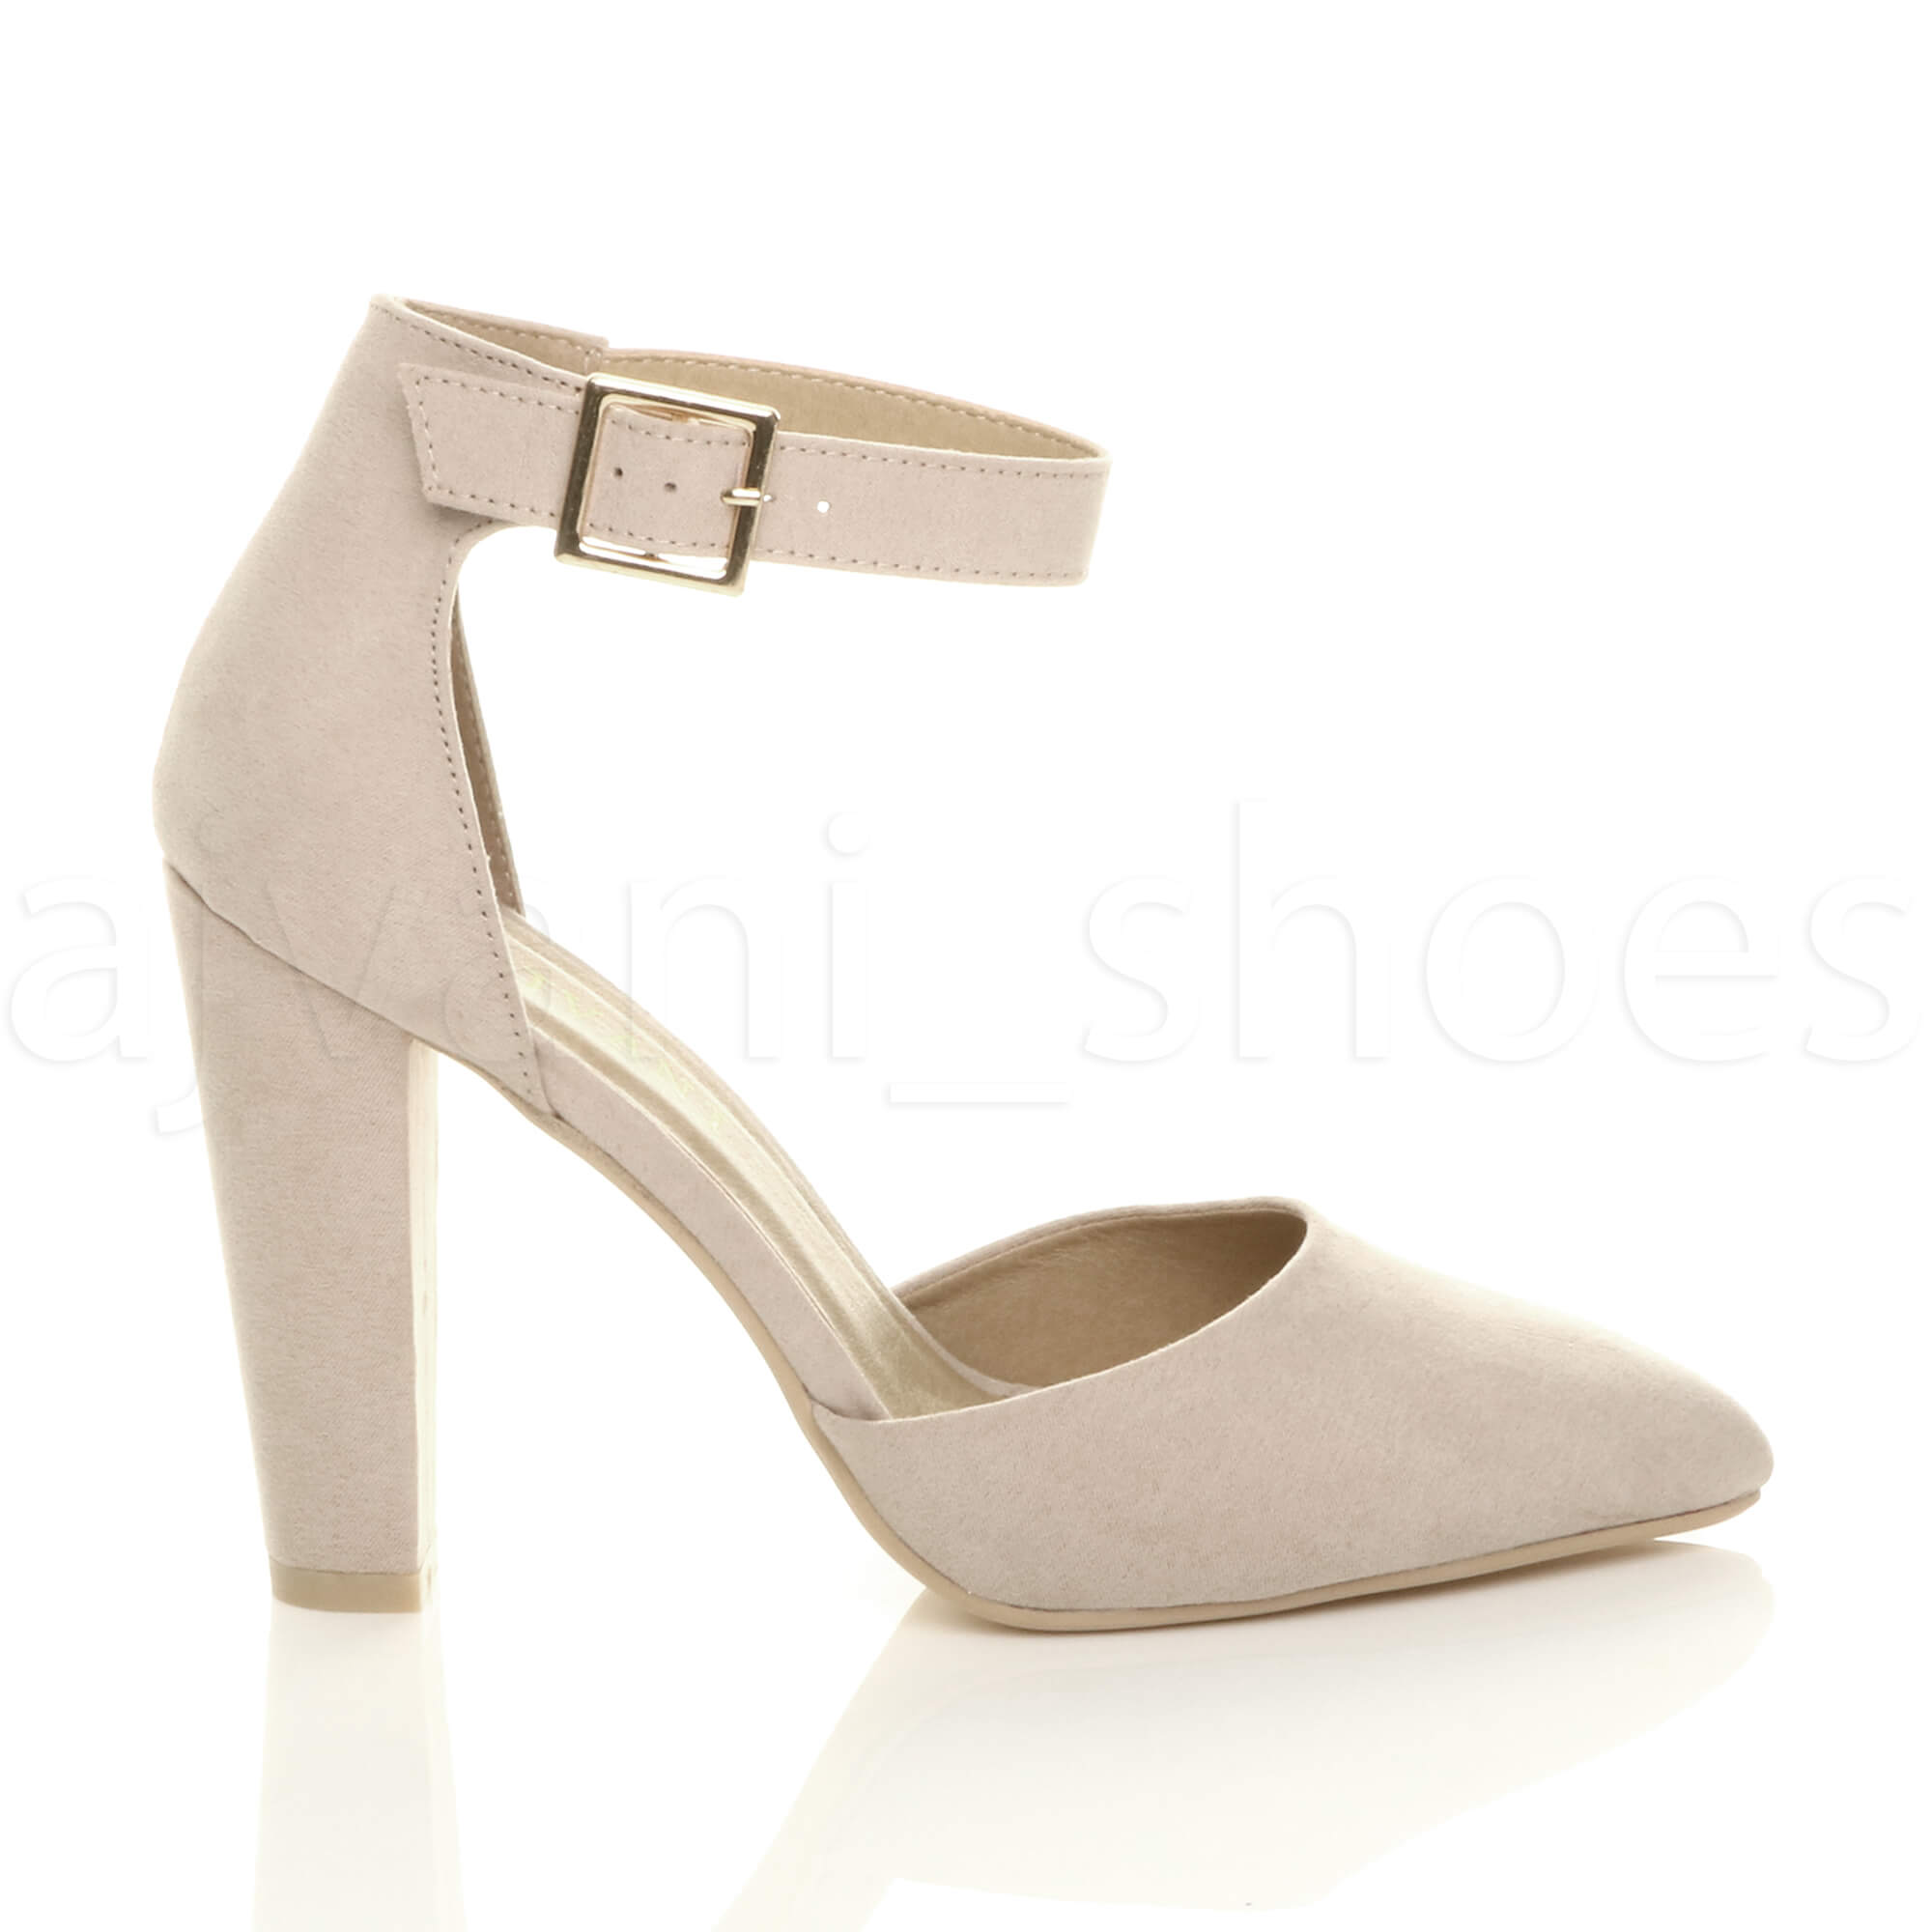 WOMENS-LADIES-HIGH-BLOCK-HEEL-ANKLE-STRAP-BUCKLE-POINTED-COURT-SHOES-SIZE thumbnail 3